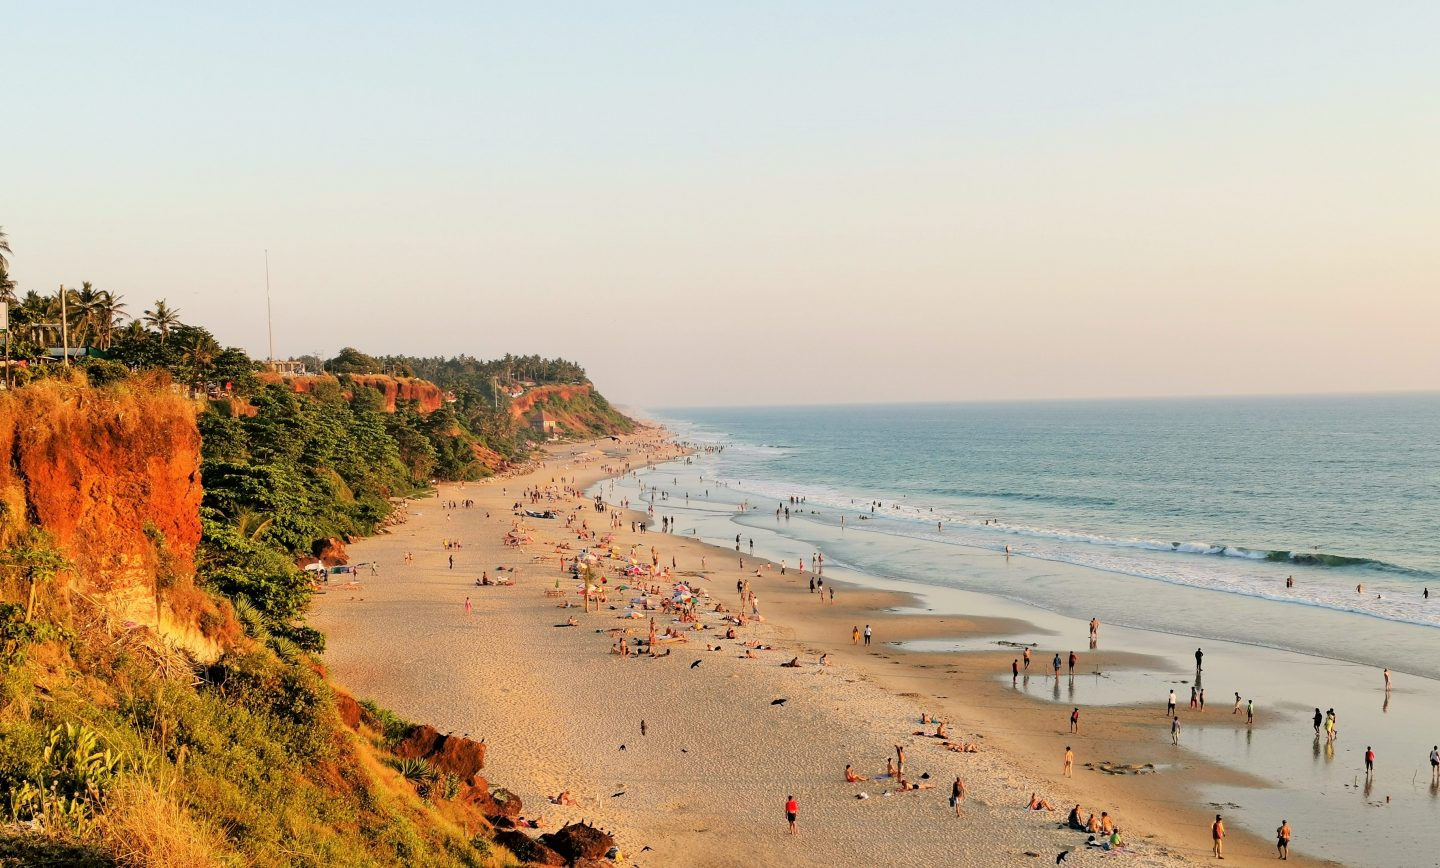 Cliff-backed beach of Varkala, Kerala India